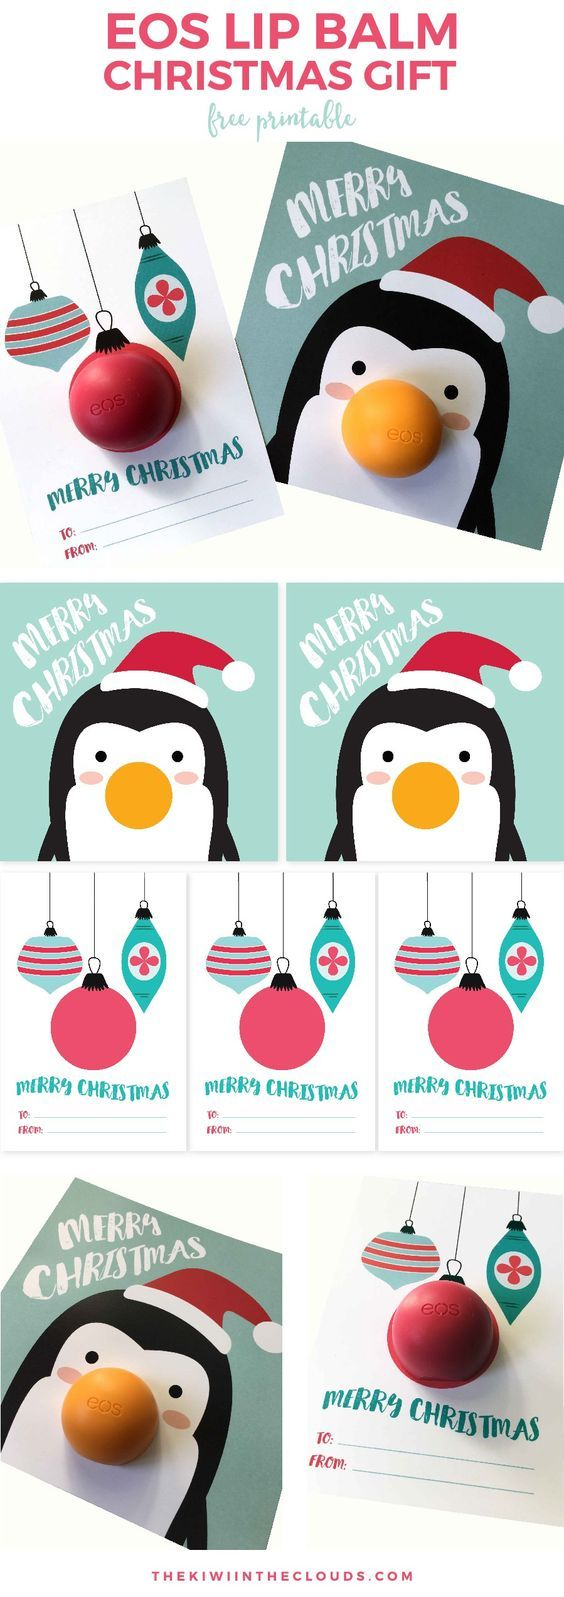 Balm christmas gift turn old eos containers into cool crafts ideas - Darling Penguin And Ornaments Eos Lip Balm Christmas Gift Free Printable Cards Just Attach The